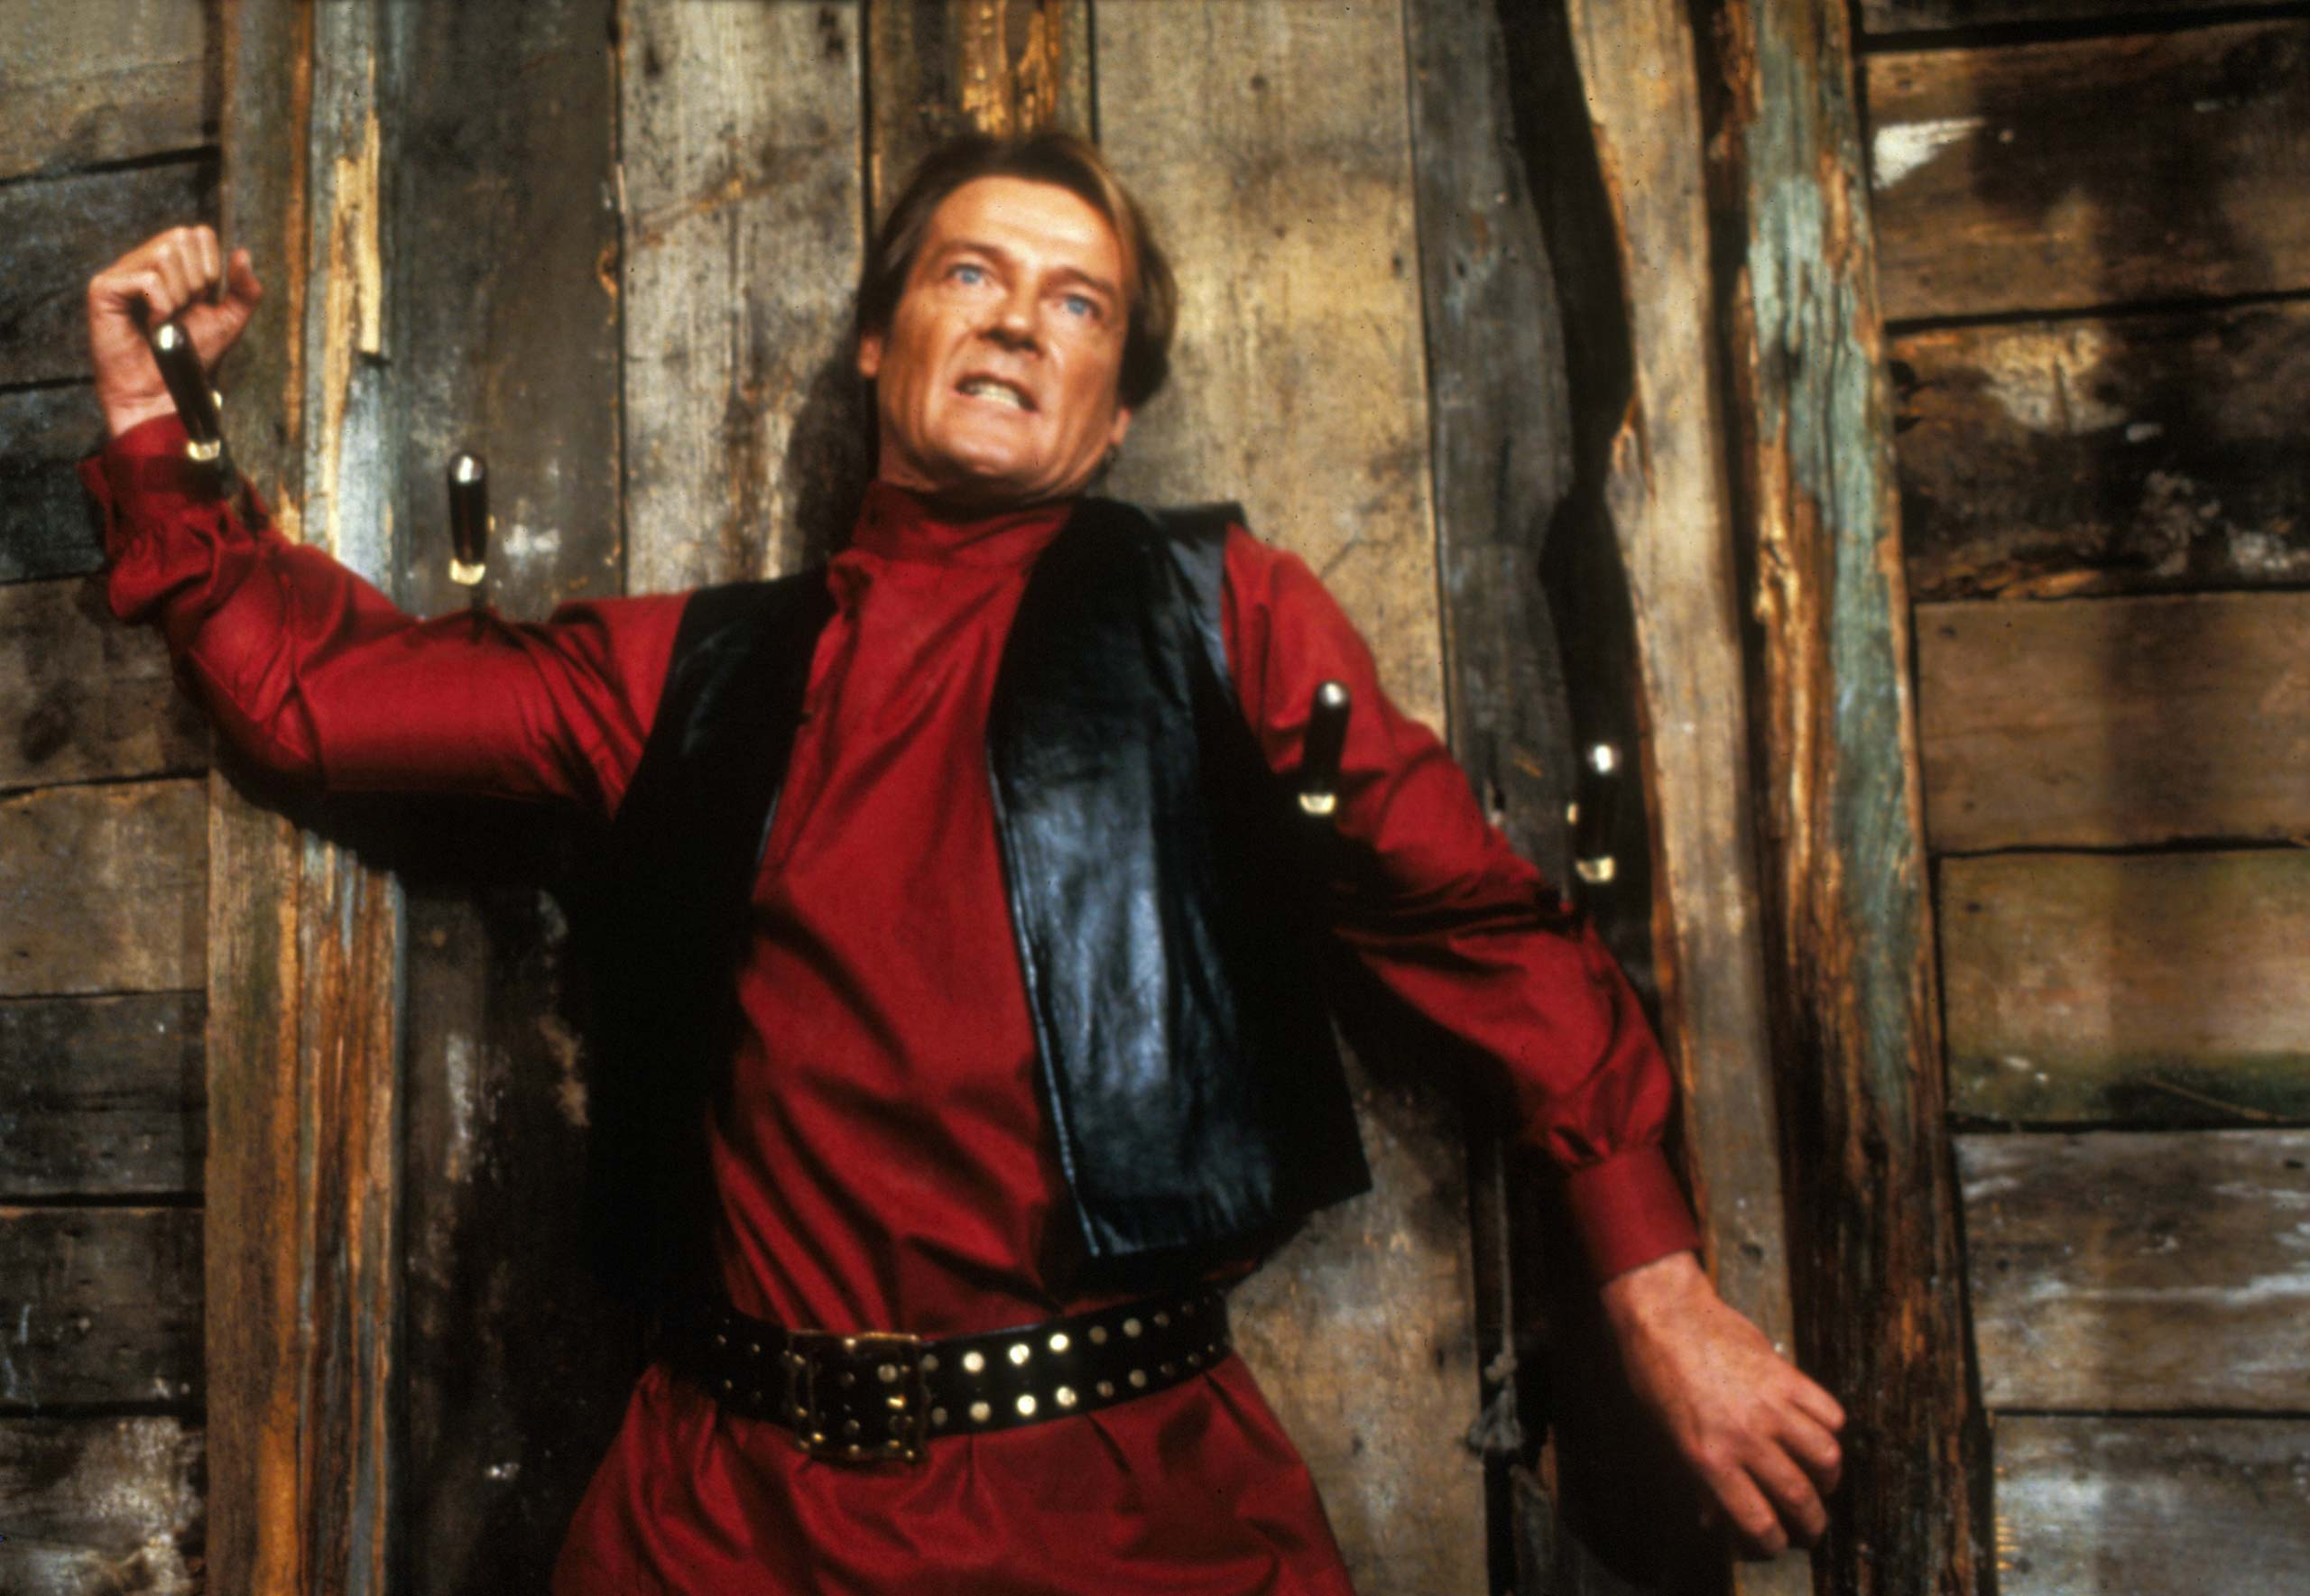 <strong><i>Octopussy</i> (1983) - Roger Moore</strong>